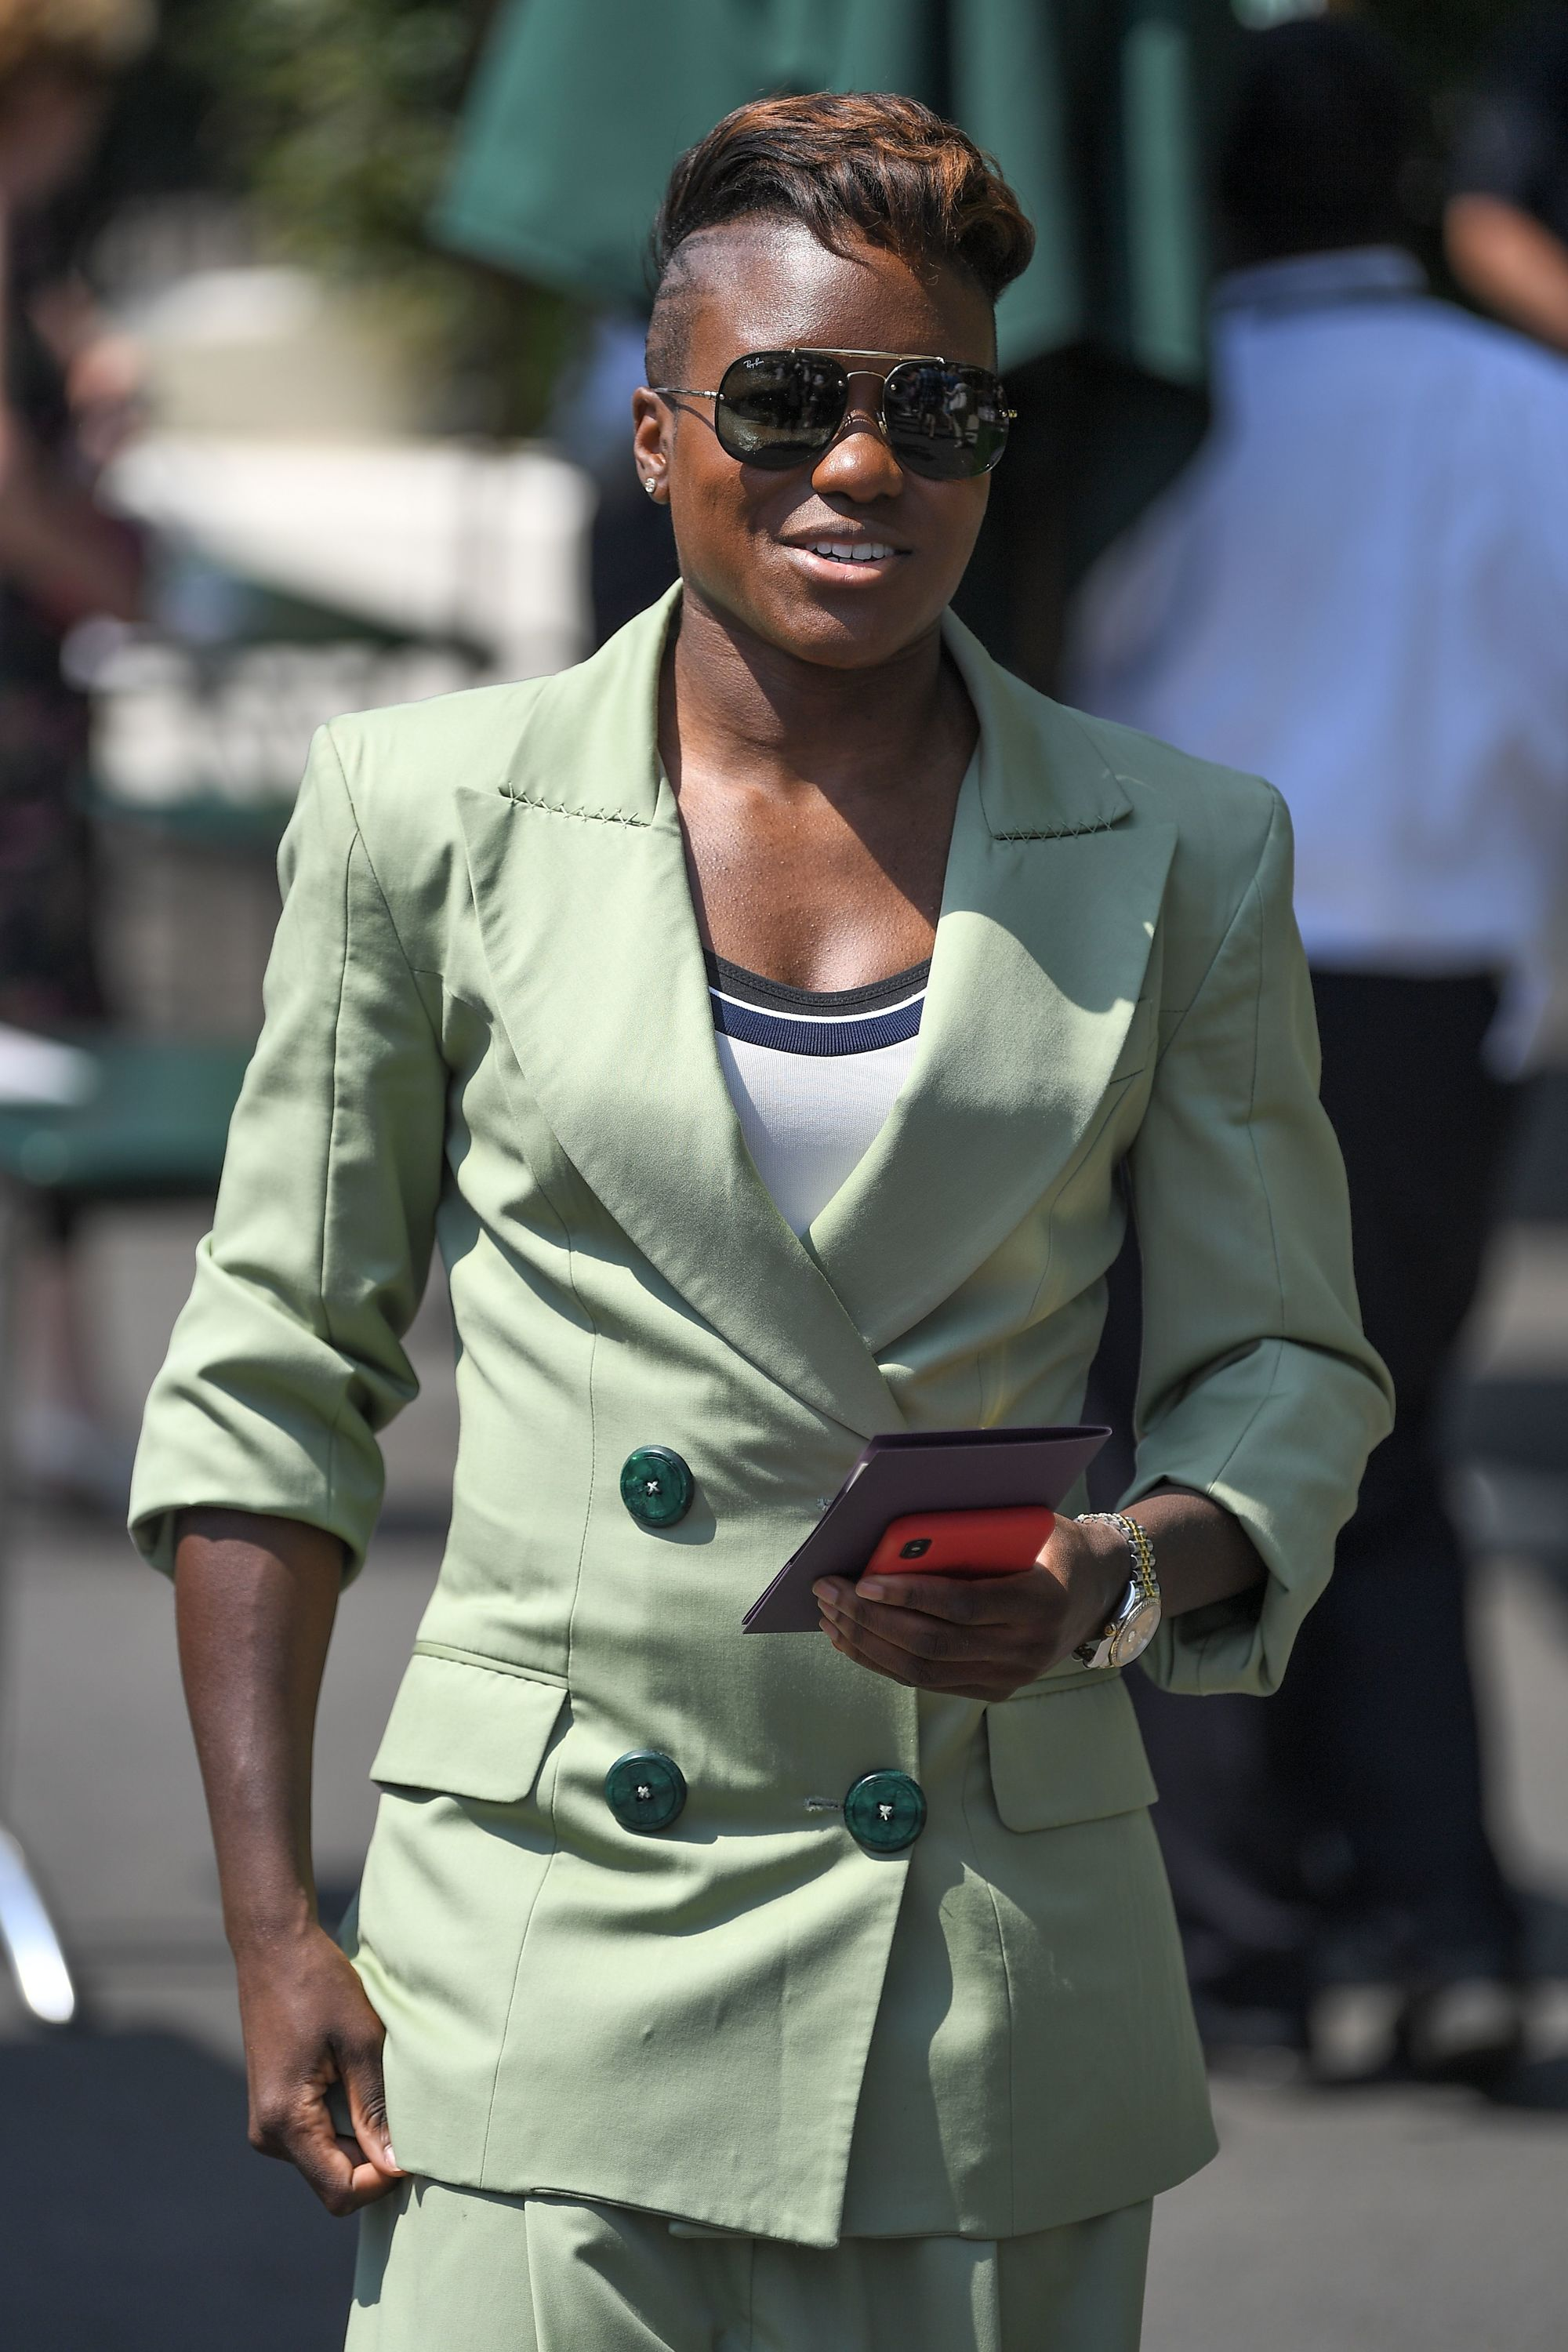 Nicola Adams at Wimbledon 2018 with golden brown short hair with shaved design undercut wearing mint green suit and sunglasses